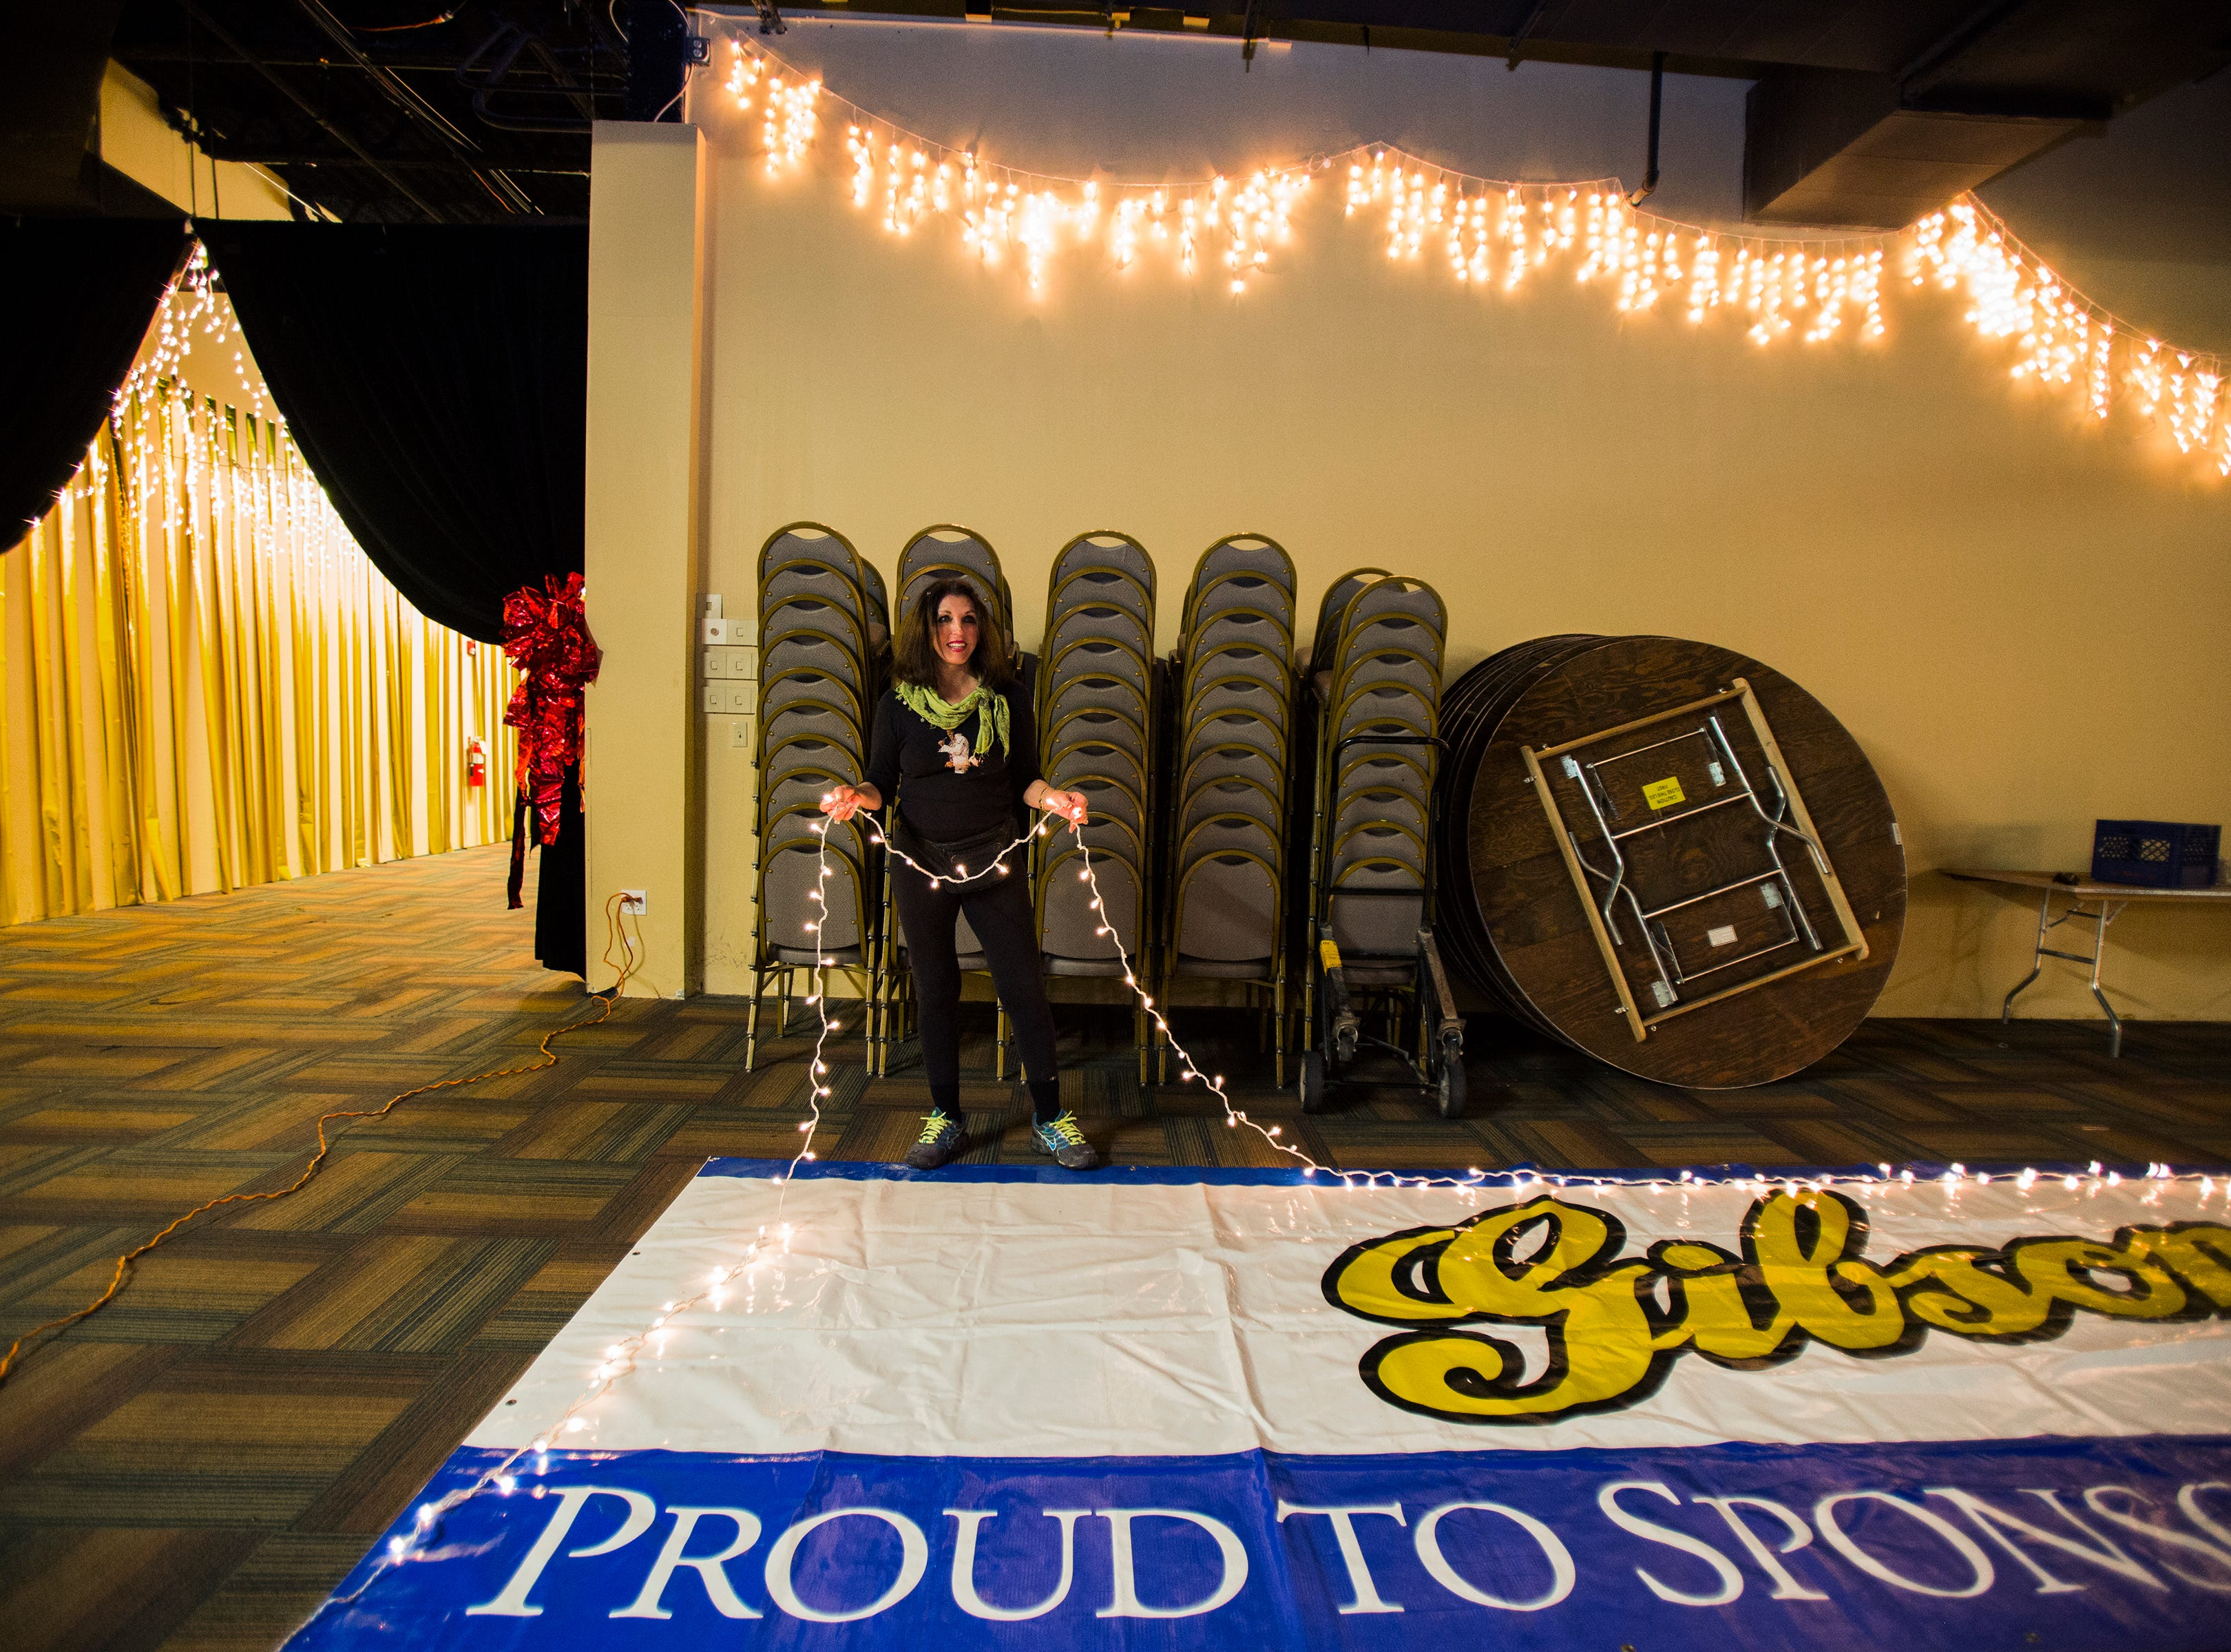 Sept. 23, 2014 - Pat Kerr Tigrett, founder and general chairman of the Blues Ball, outlines a banner with white Christmas lights as she decorates a room at the Gibson Guitar Factory.